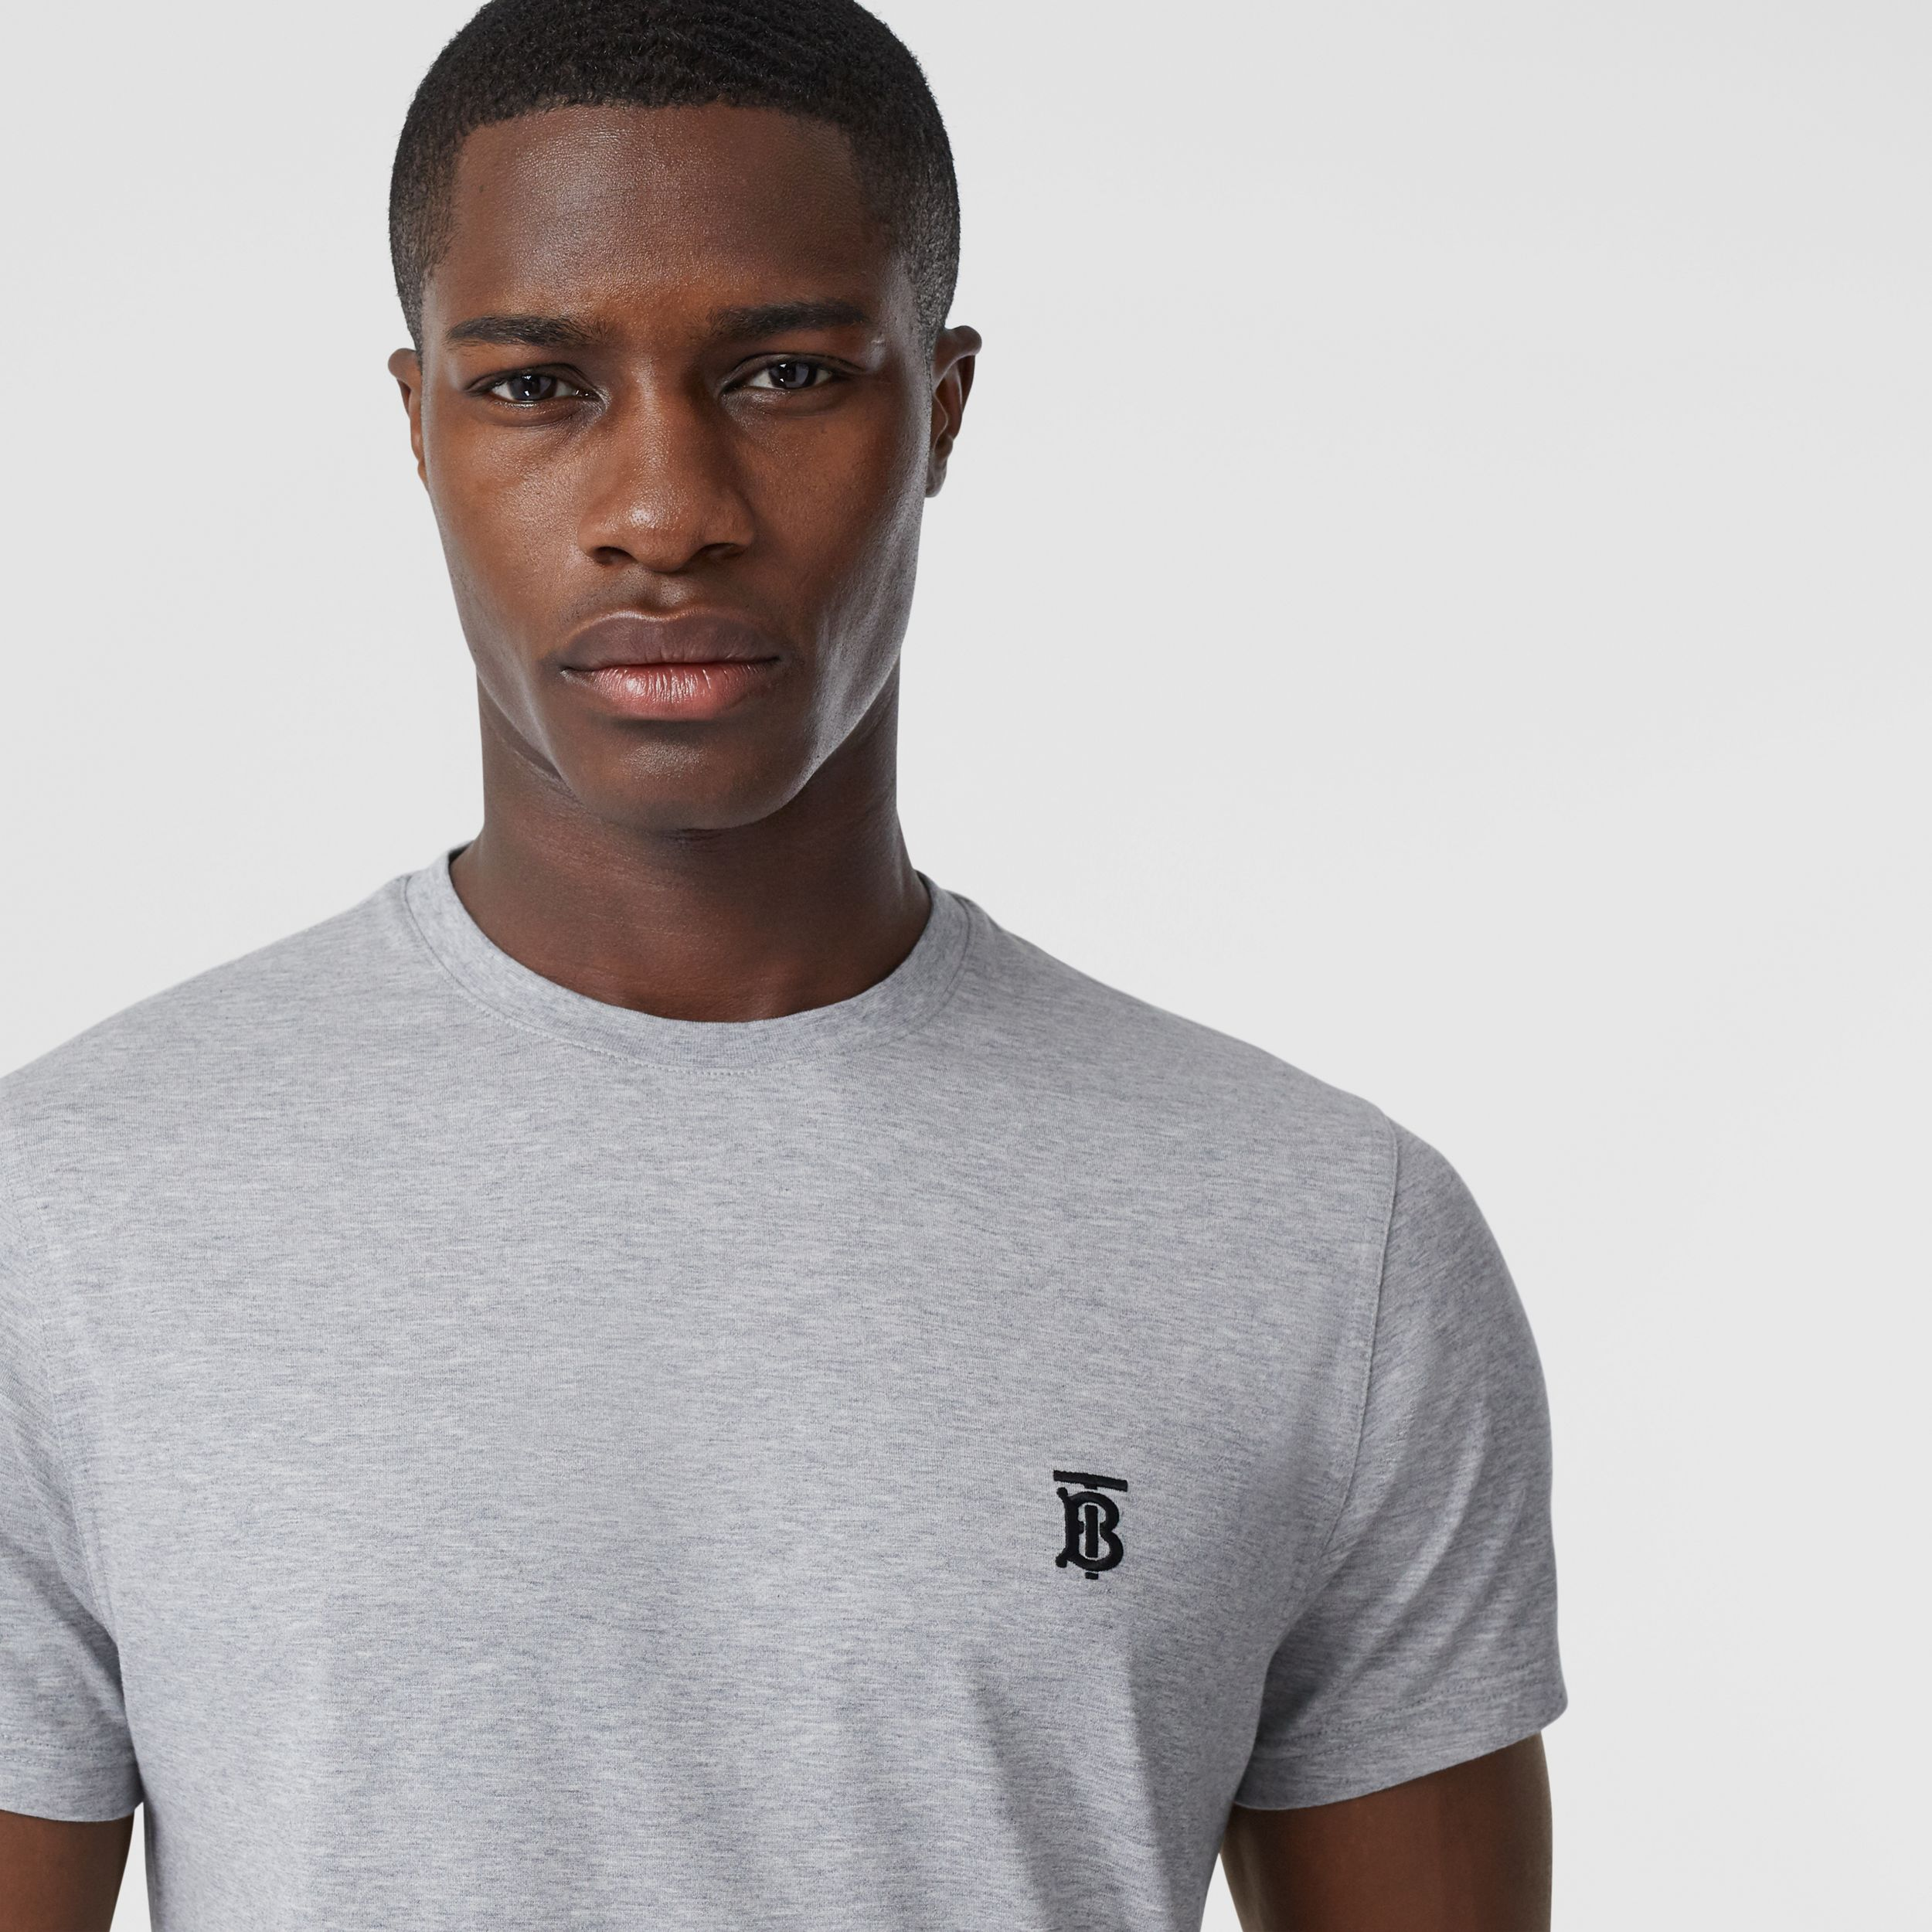 Monogram Motif Cotton T-shirt in Pale Grey Melange - Men | Burberry - 2